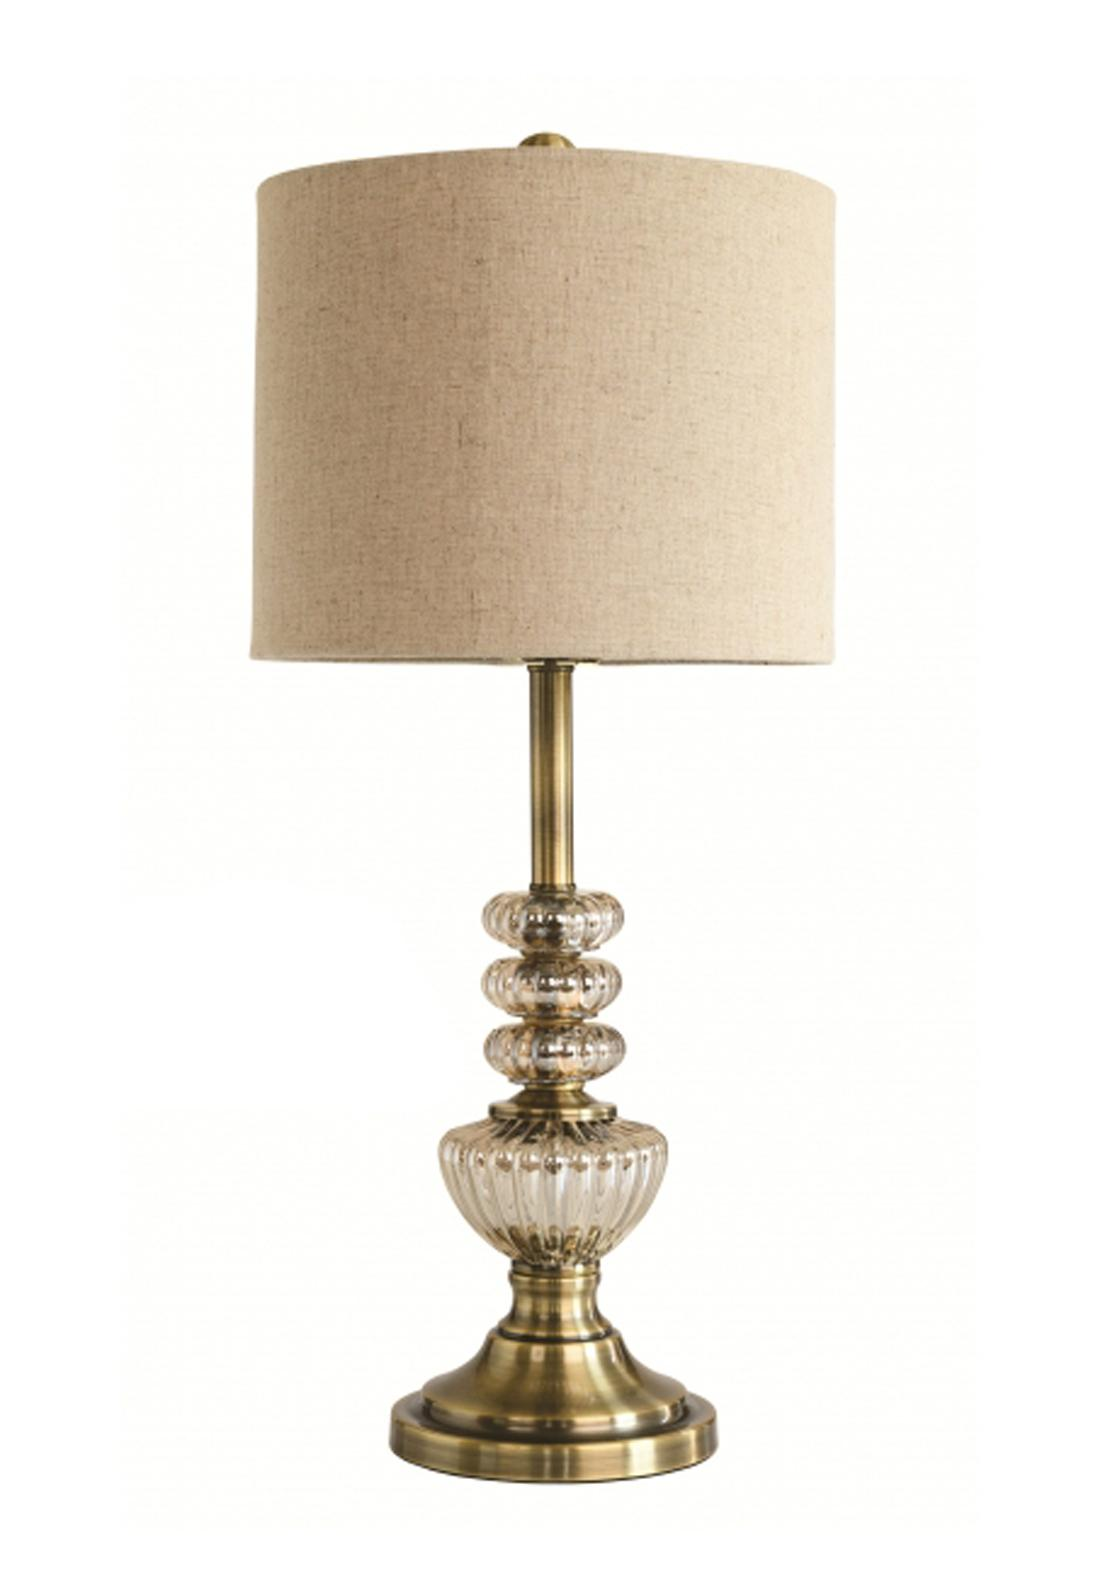 Mindy Browne Mandy Table Lamp